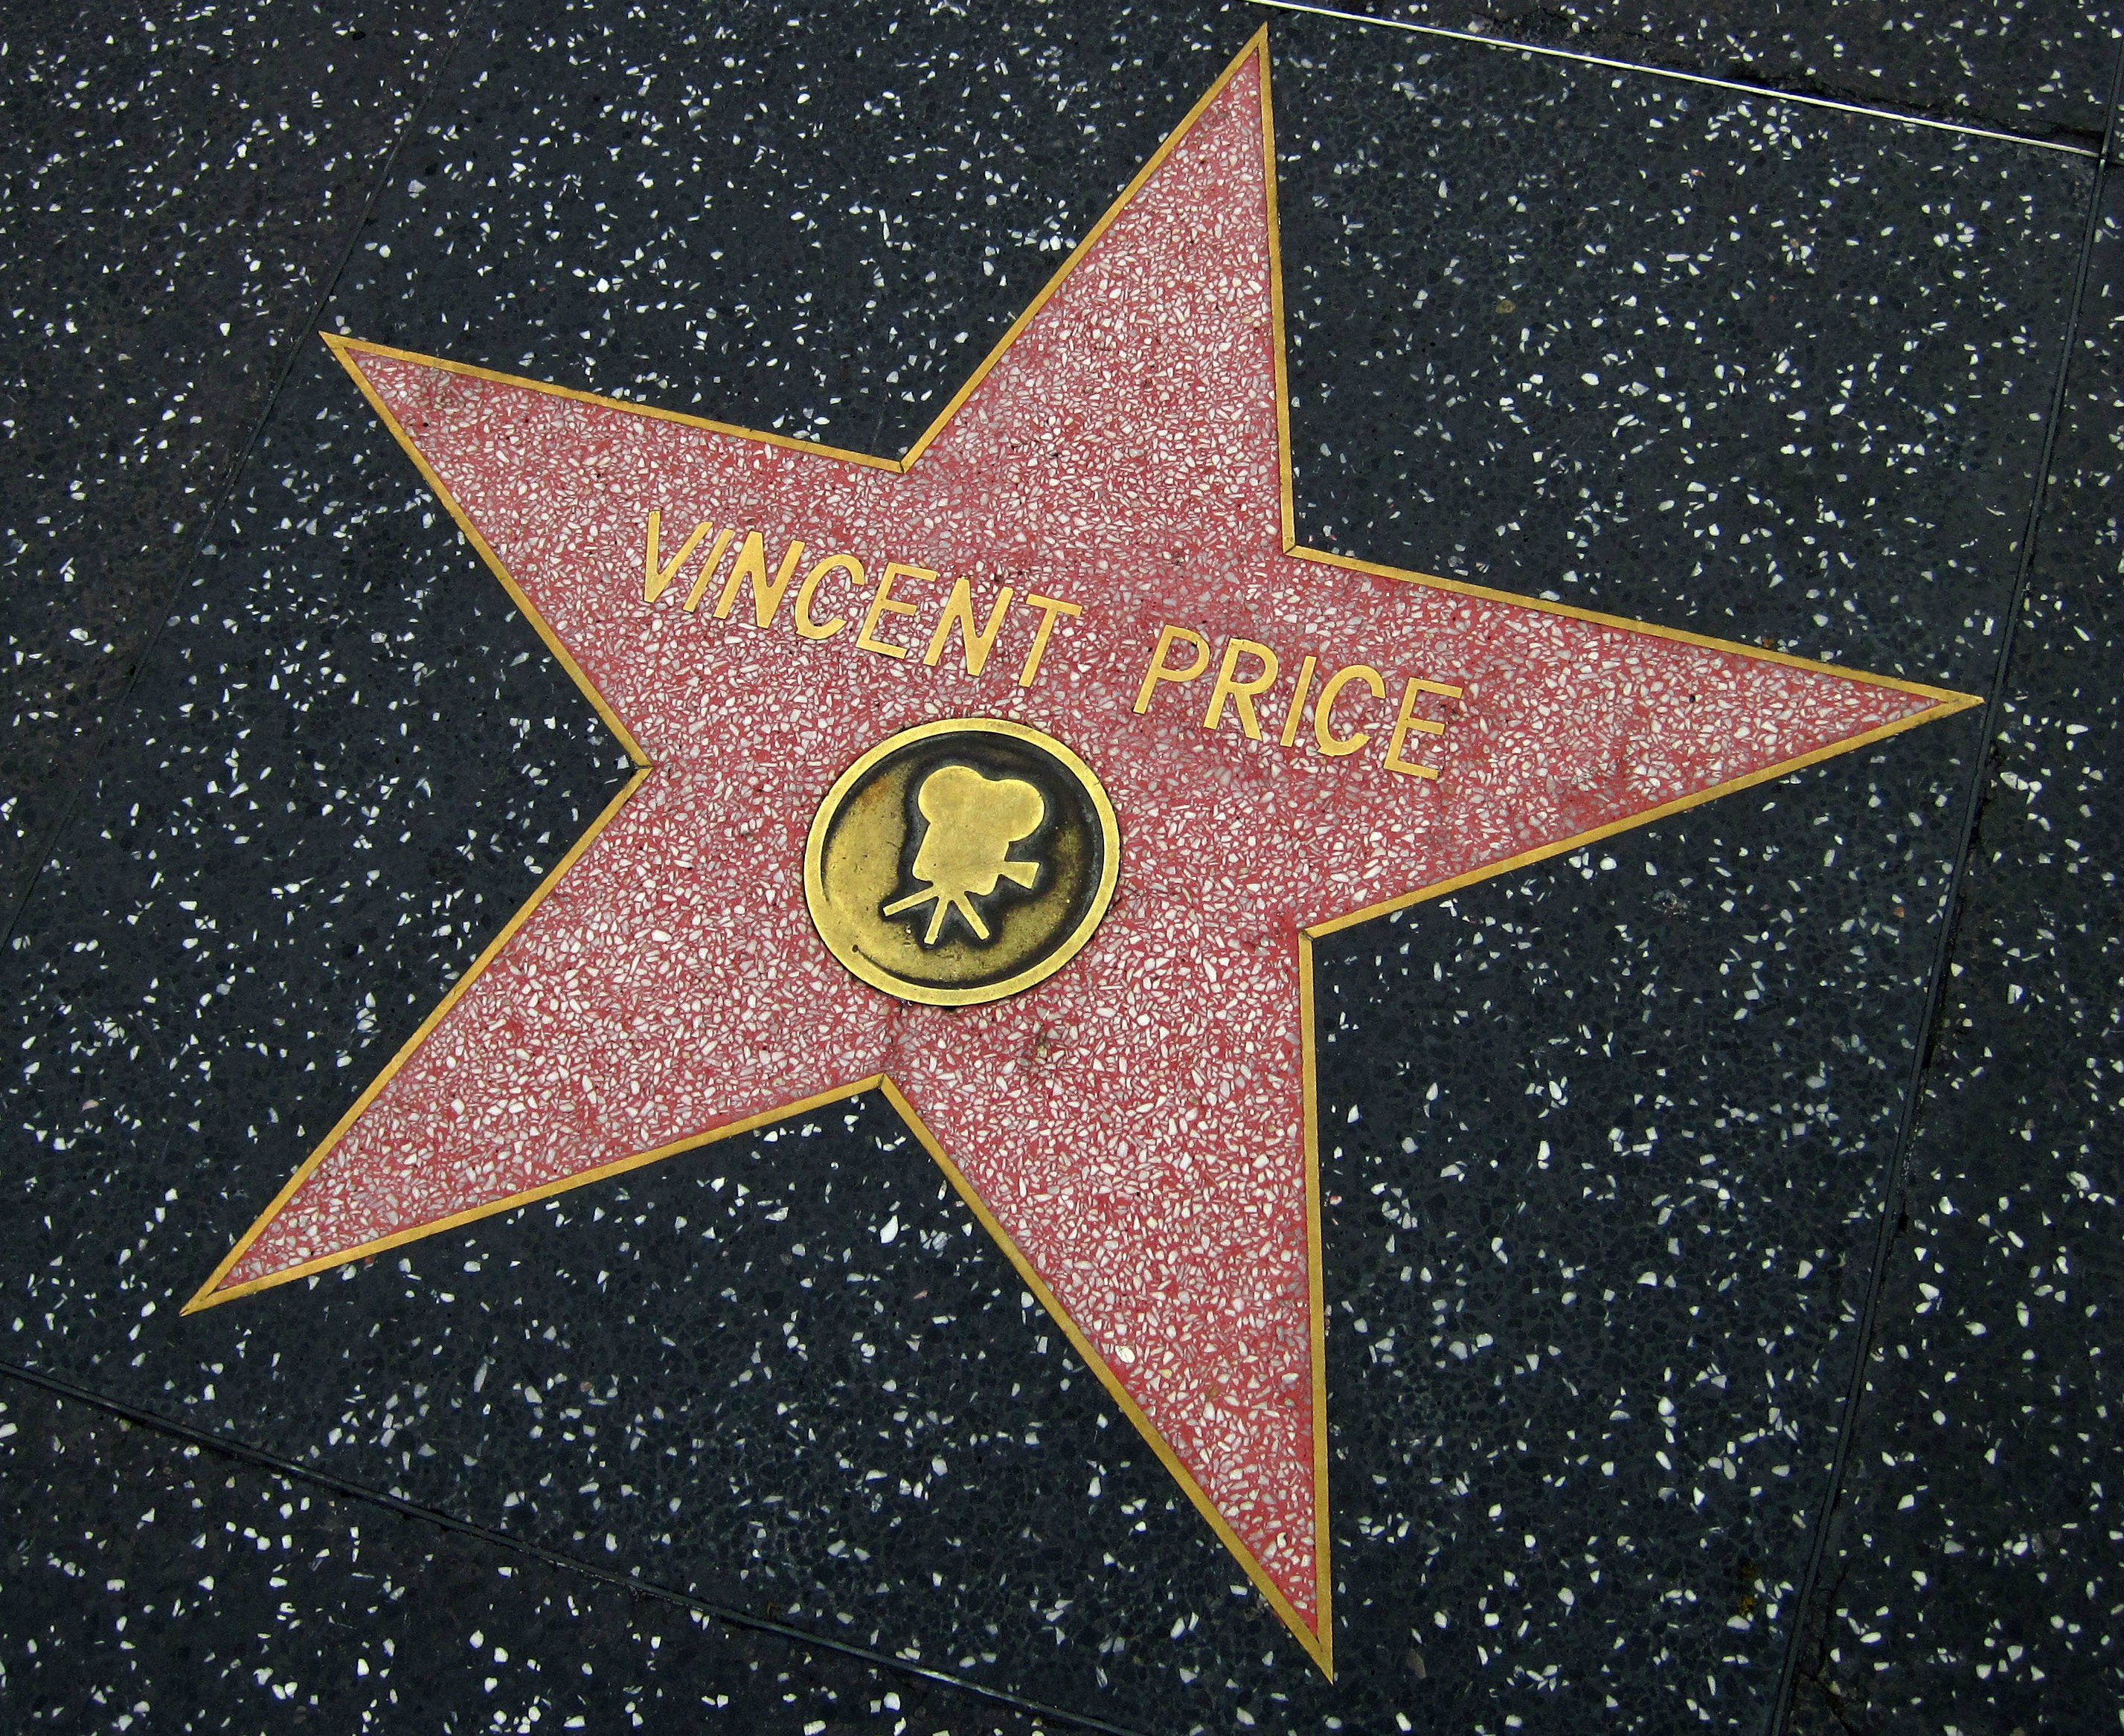 Vincent Price Facts